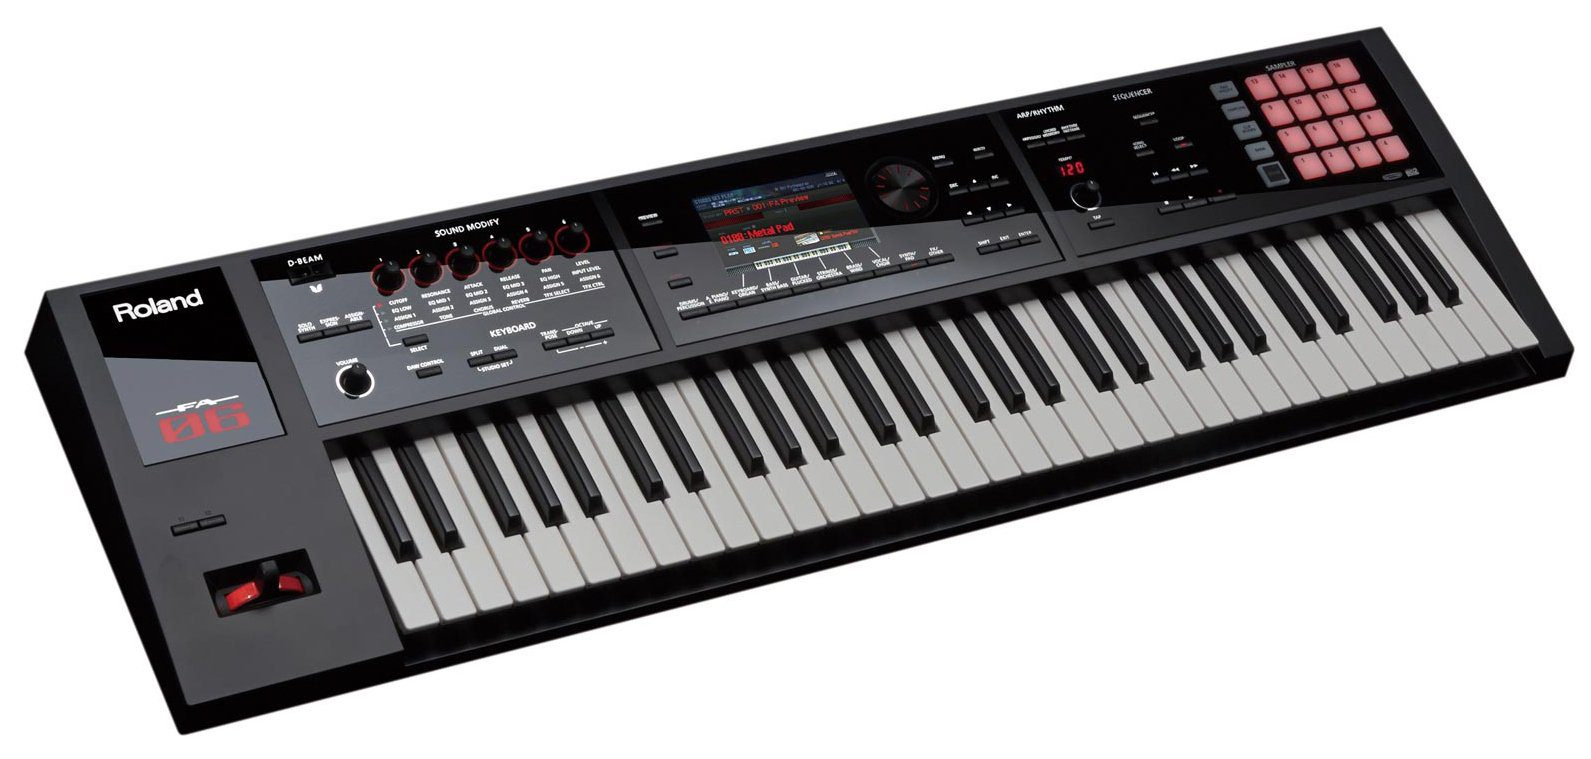 Roland Keyboard Workstations : top news roland fa 06 fa 08 keyboard workstations ~ Vivirlamusica.com Haus und Dekorationen